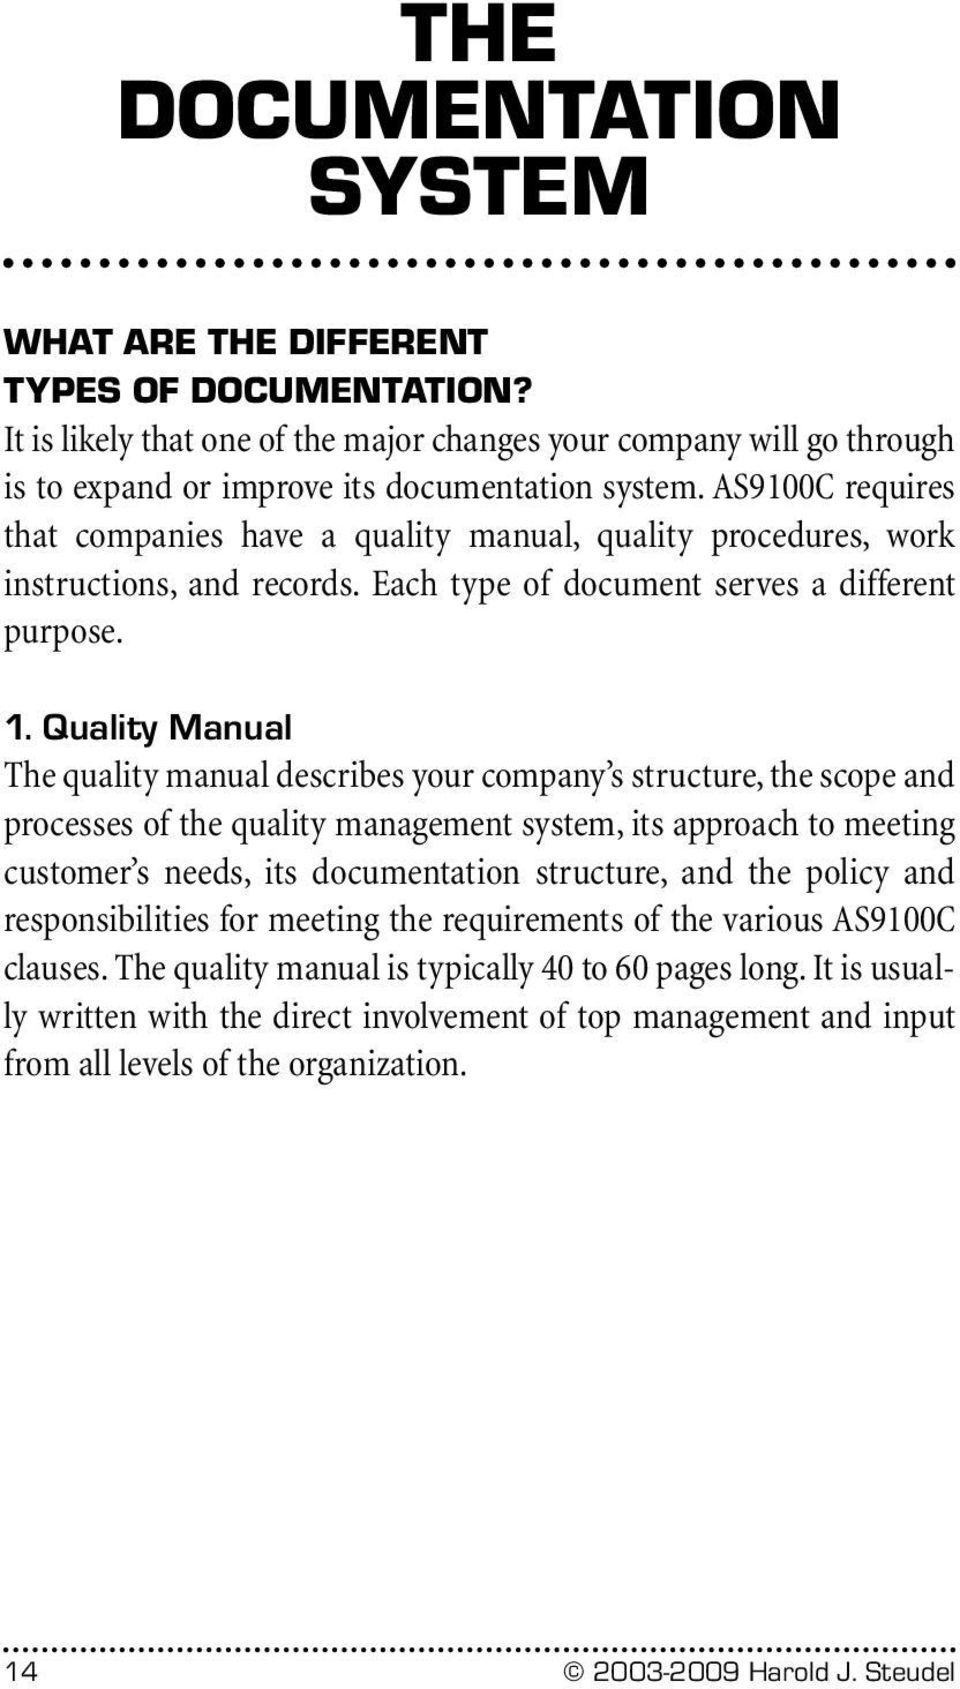 Quality Manual The quality manual describes your company s structure, the scope and processes of the quality management system, its approach to meeting customer s needs, its documentation structure,